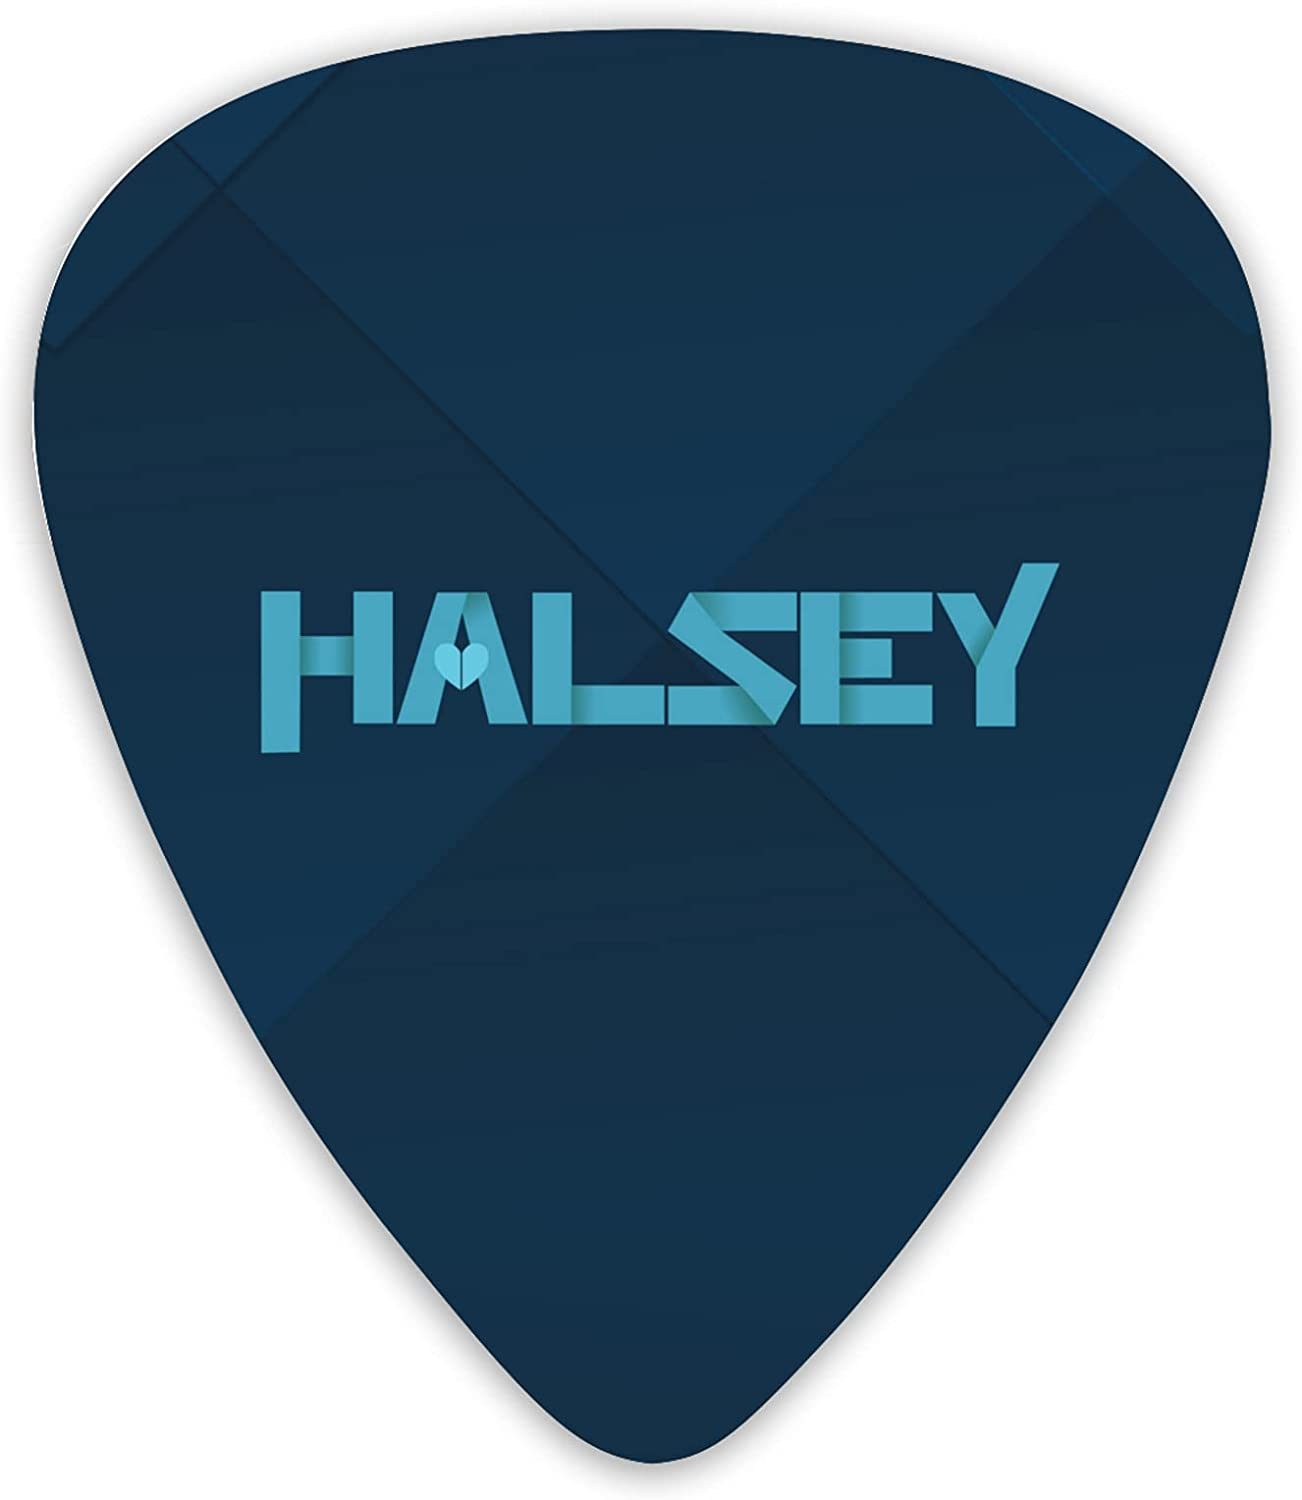 Fiuhsyct Halsey 351 Shape At the price Premium Picks G Pack Electric 12 For San Francisco Mall